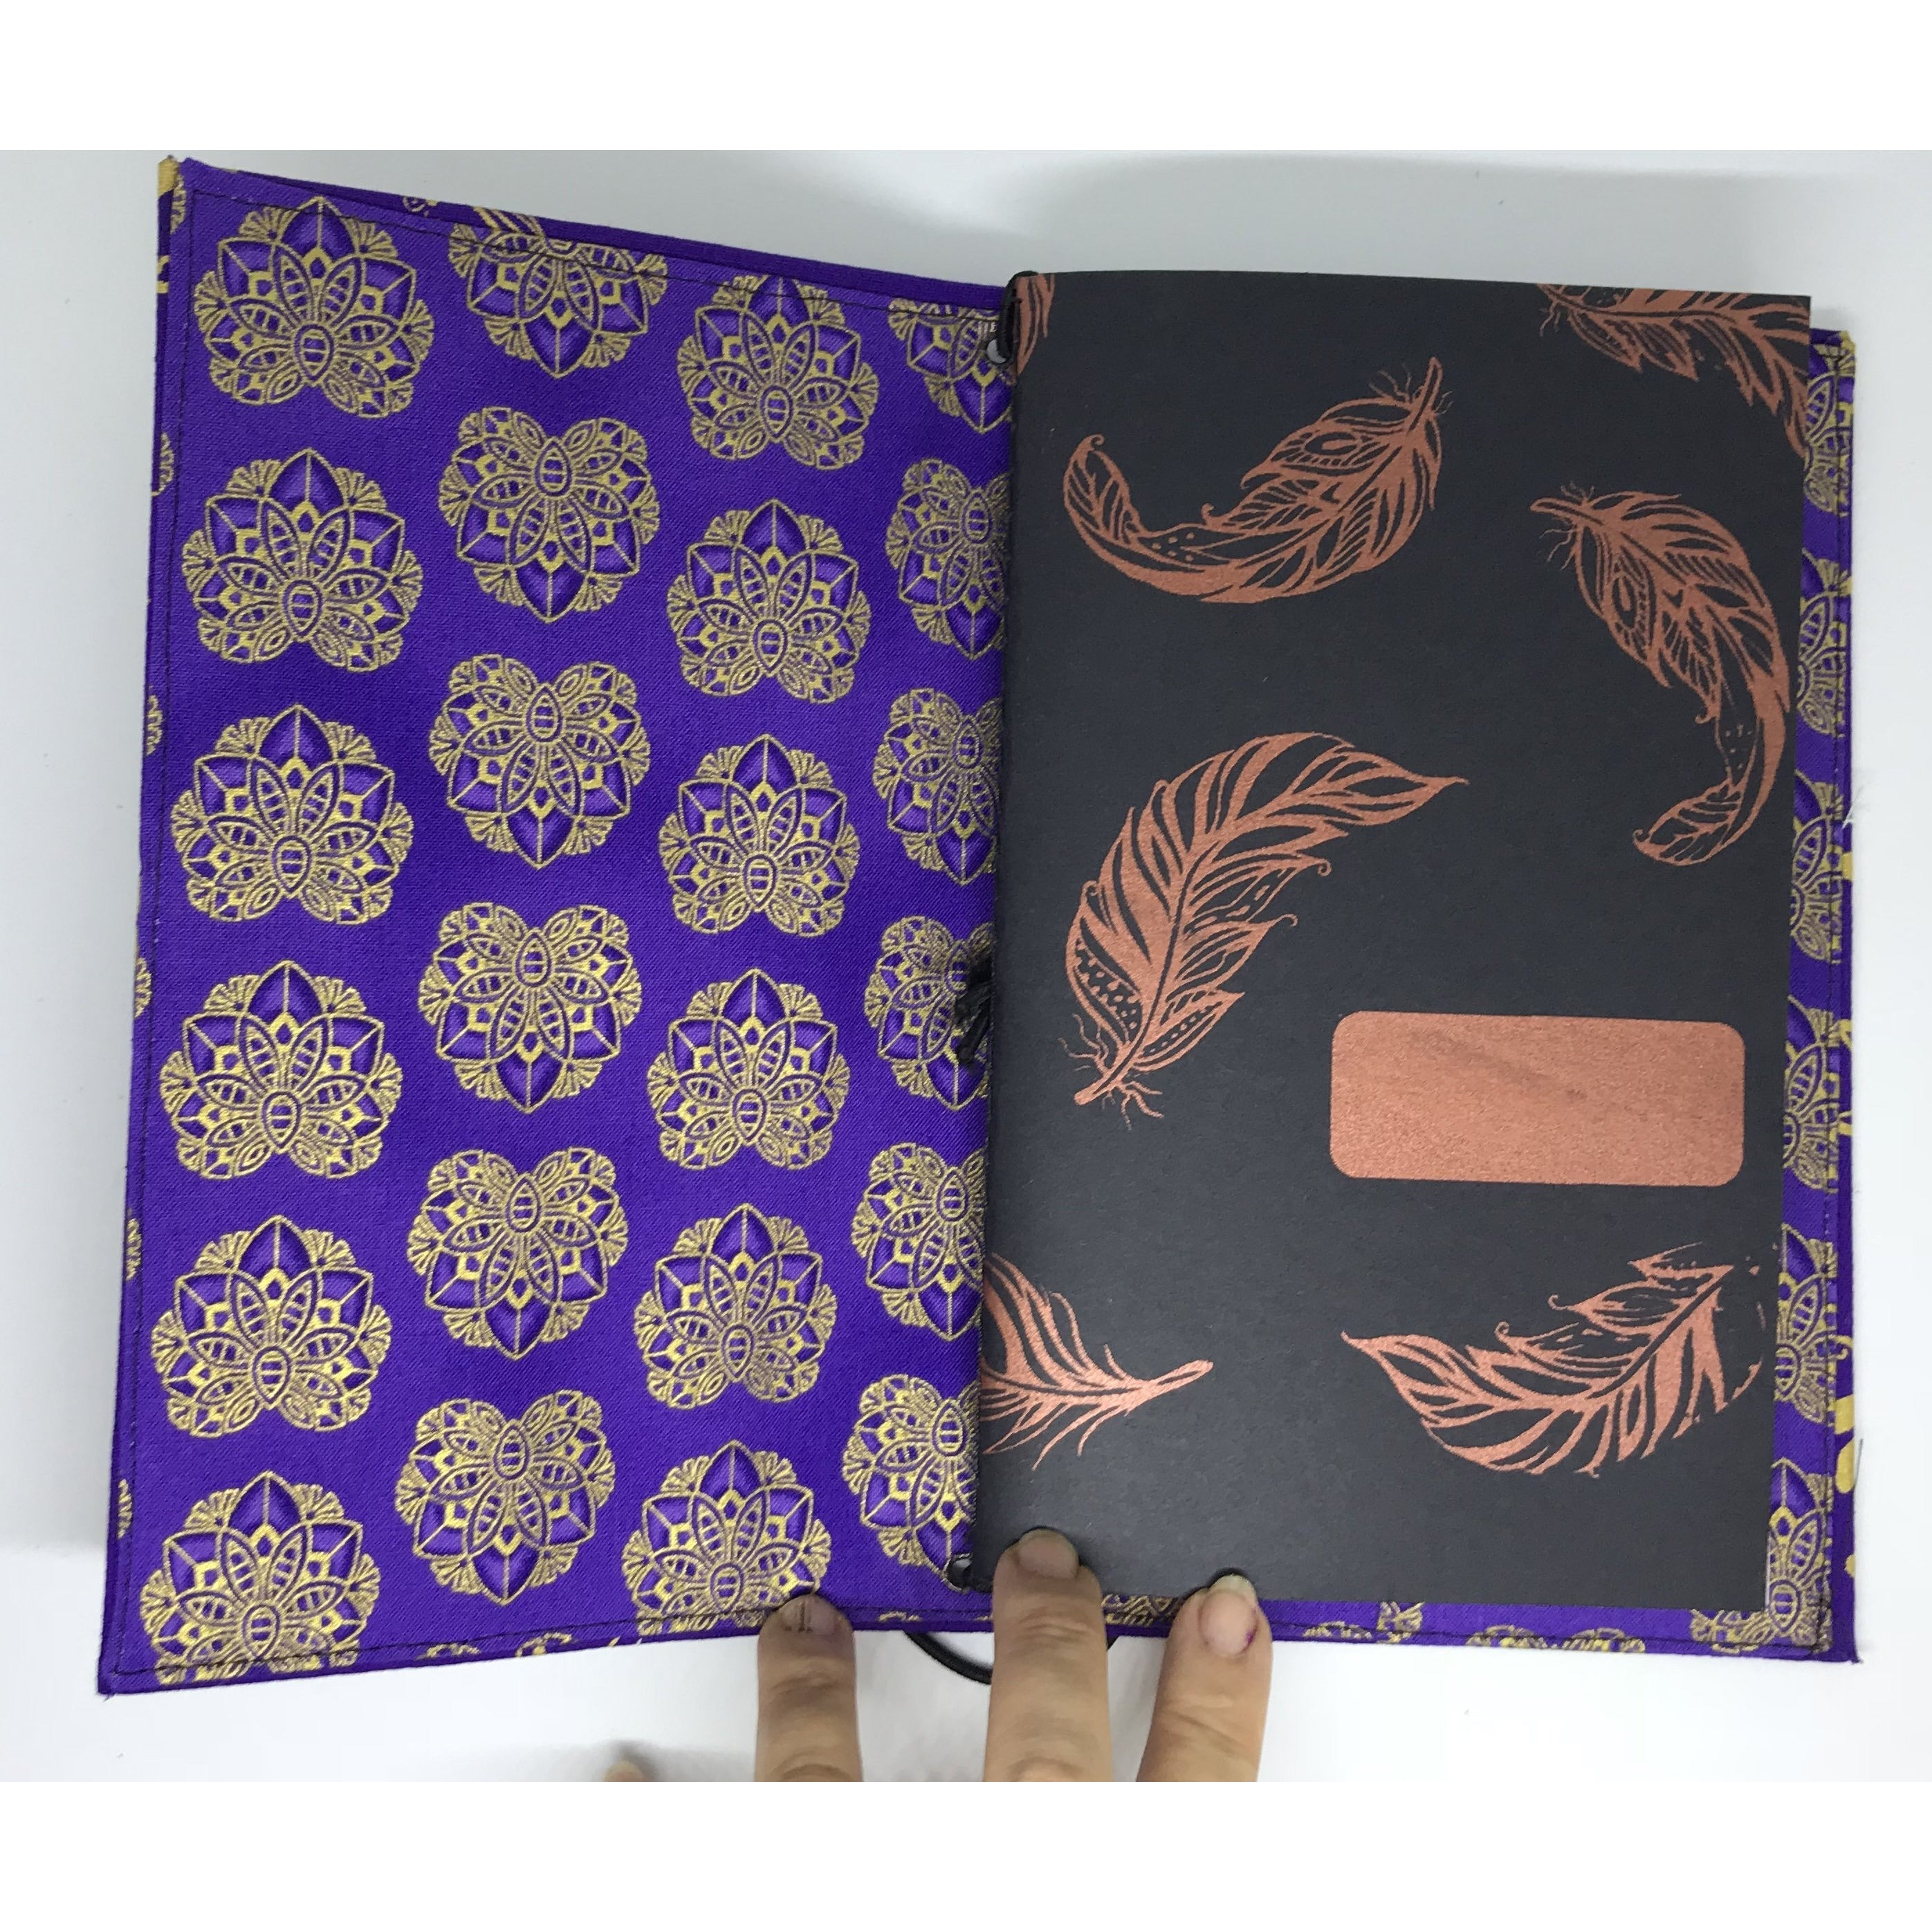 Dragonfly Hand Screen Printed Art Journal Cover With Handmade Book Art Shed Angel Papercrafts